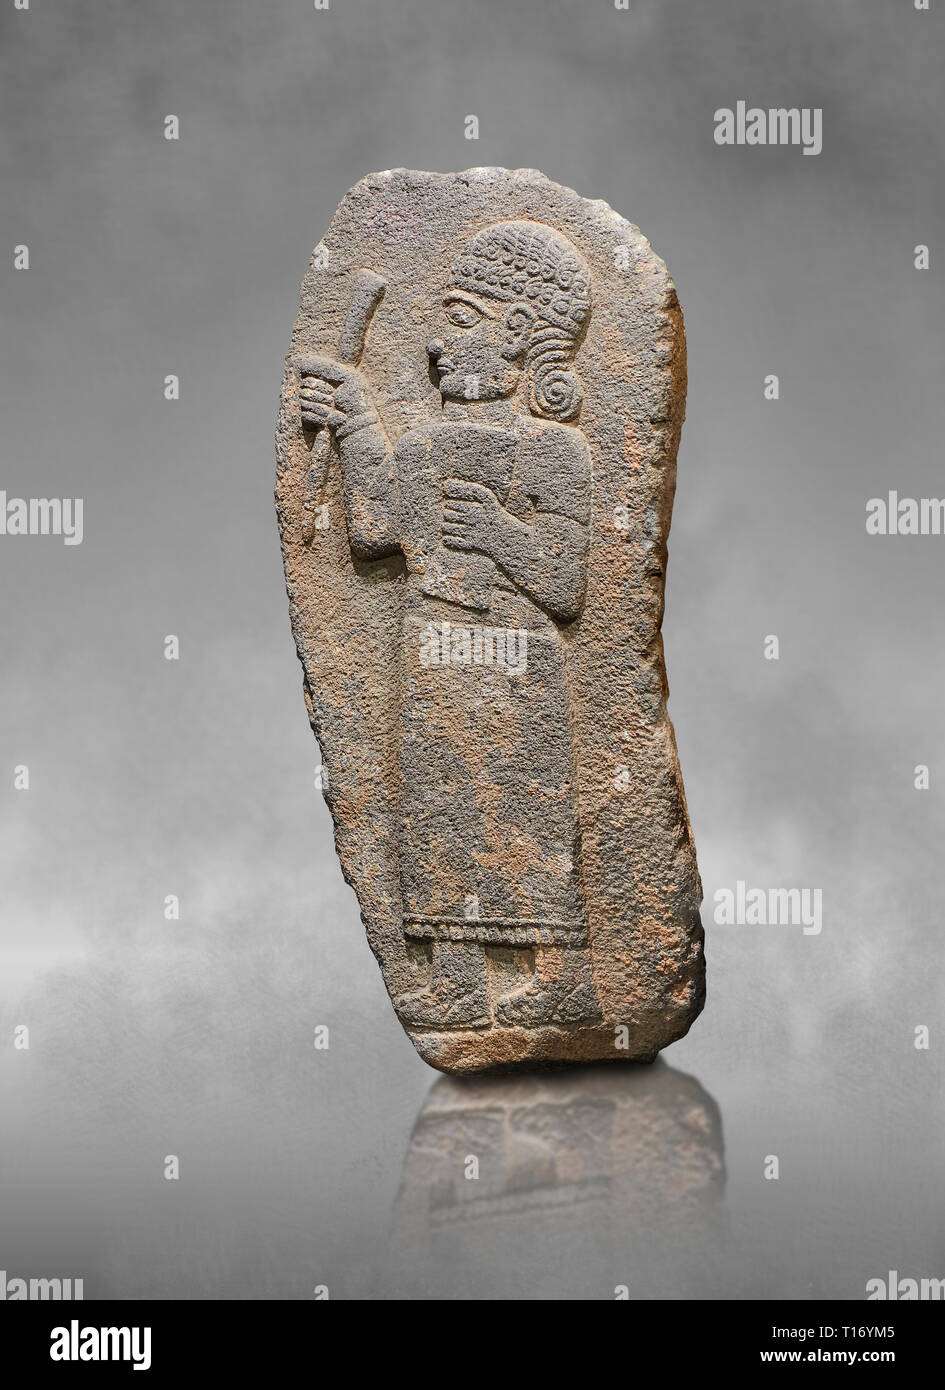 Hittite monumental relief sculpture of a figure holding a document. Adana Archaeology Museum, Turkey. Against a grey art background Stock Photo